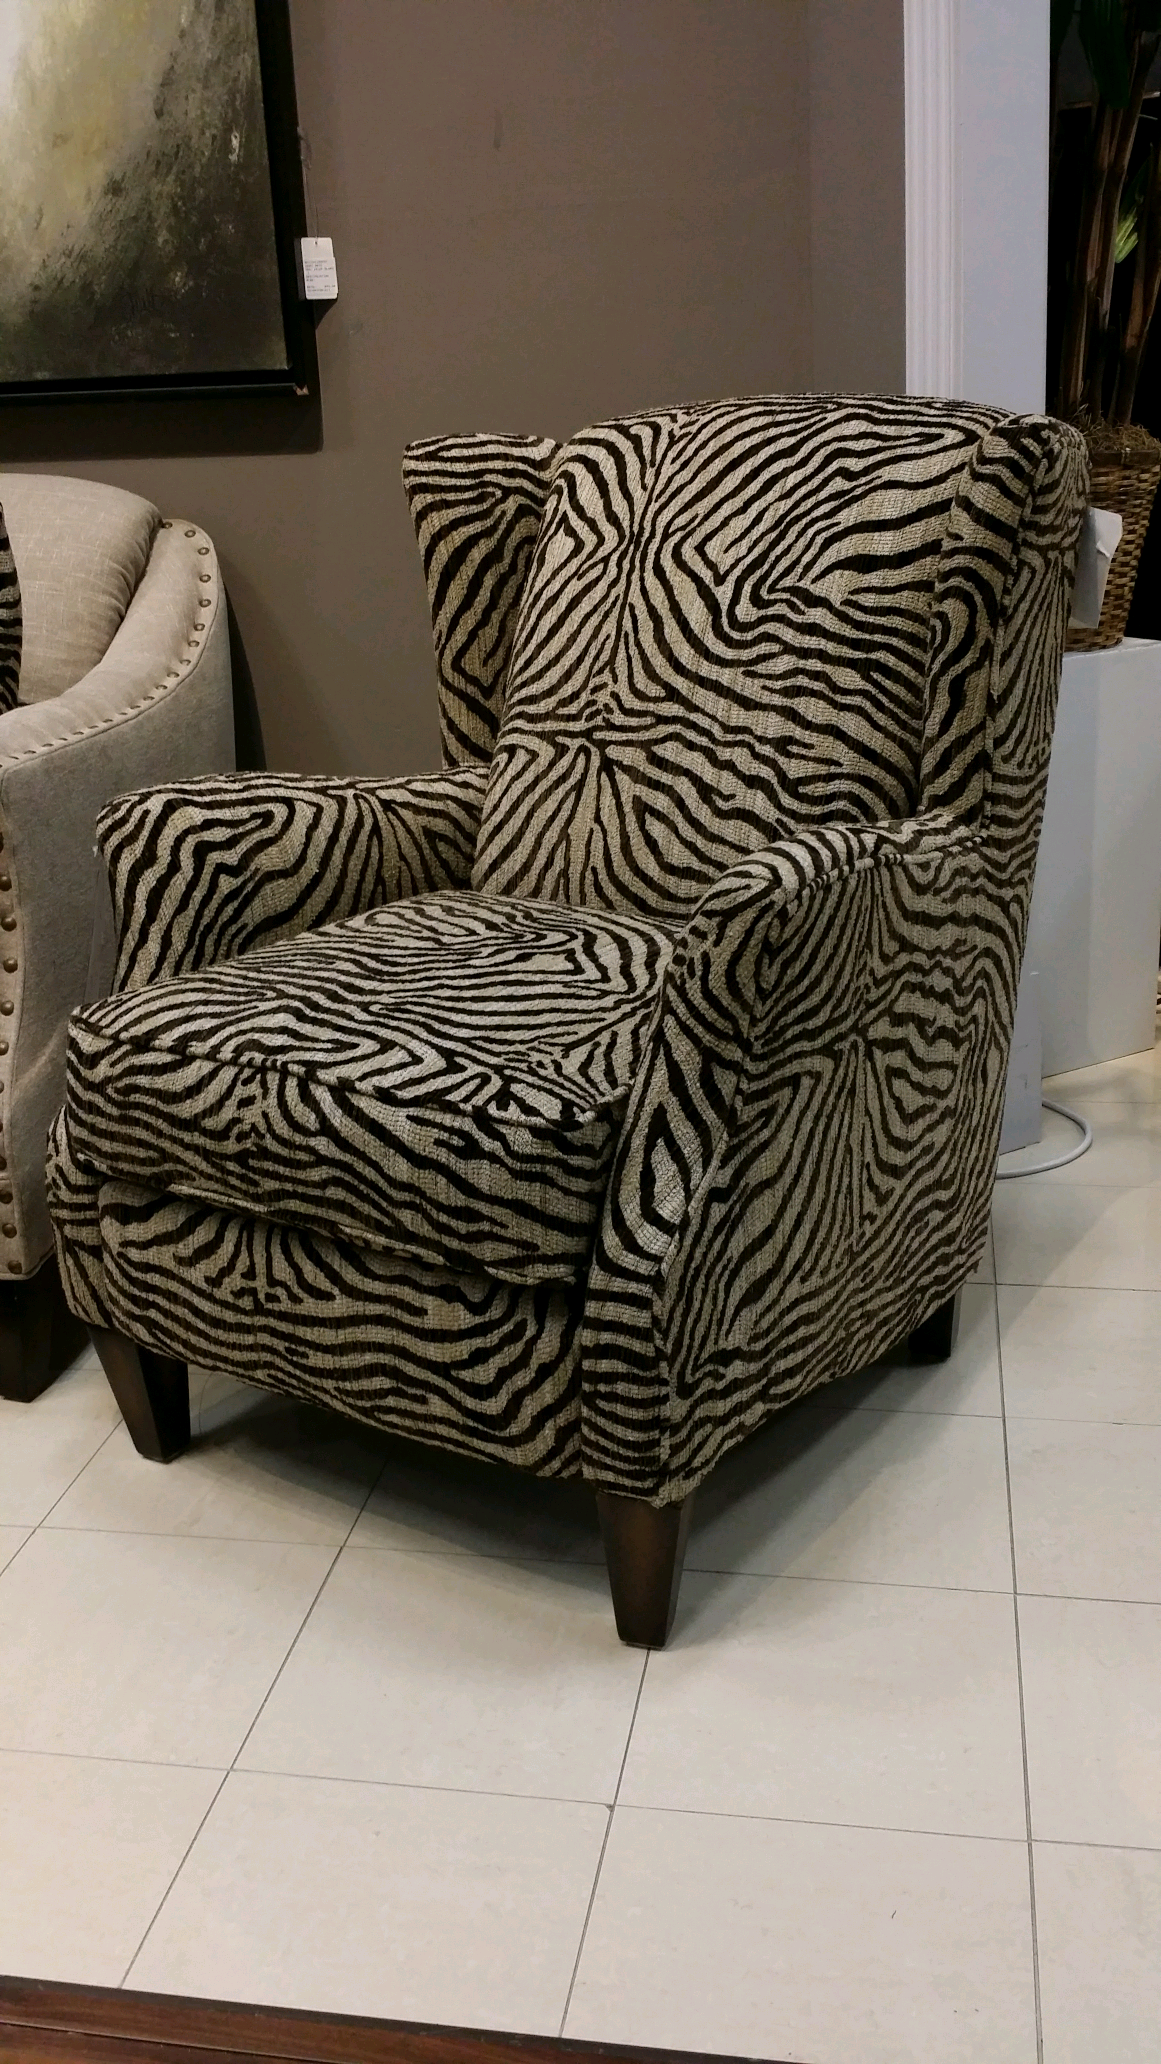 Add some pizzazz to your home with this boldly patterned zebra print accent chair this piece will add that important element of visual interest into your